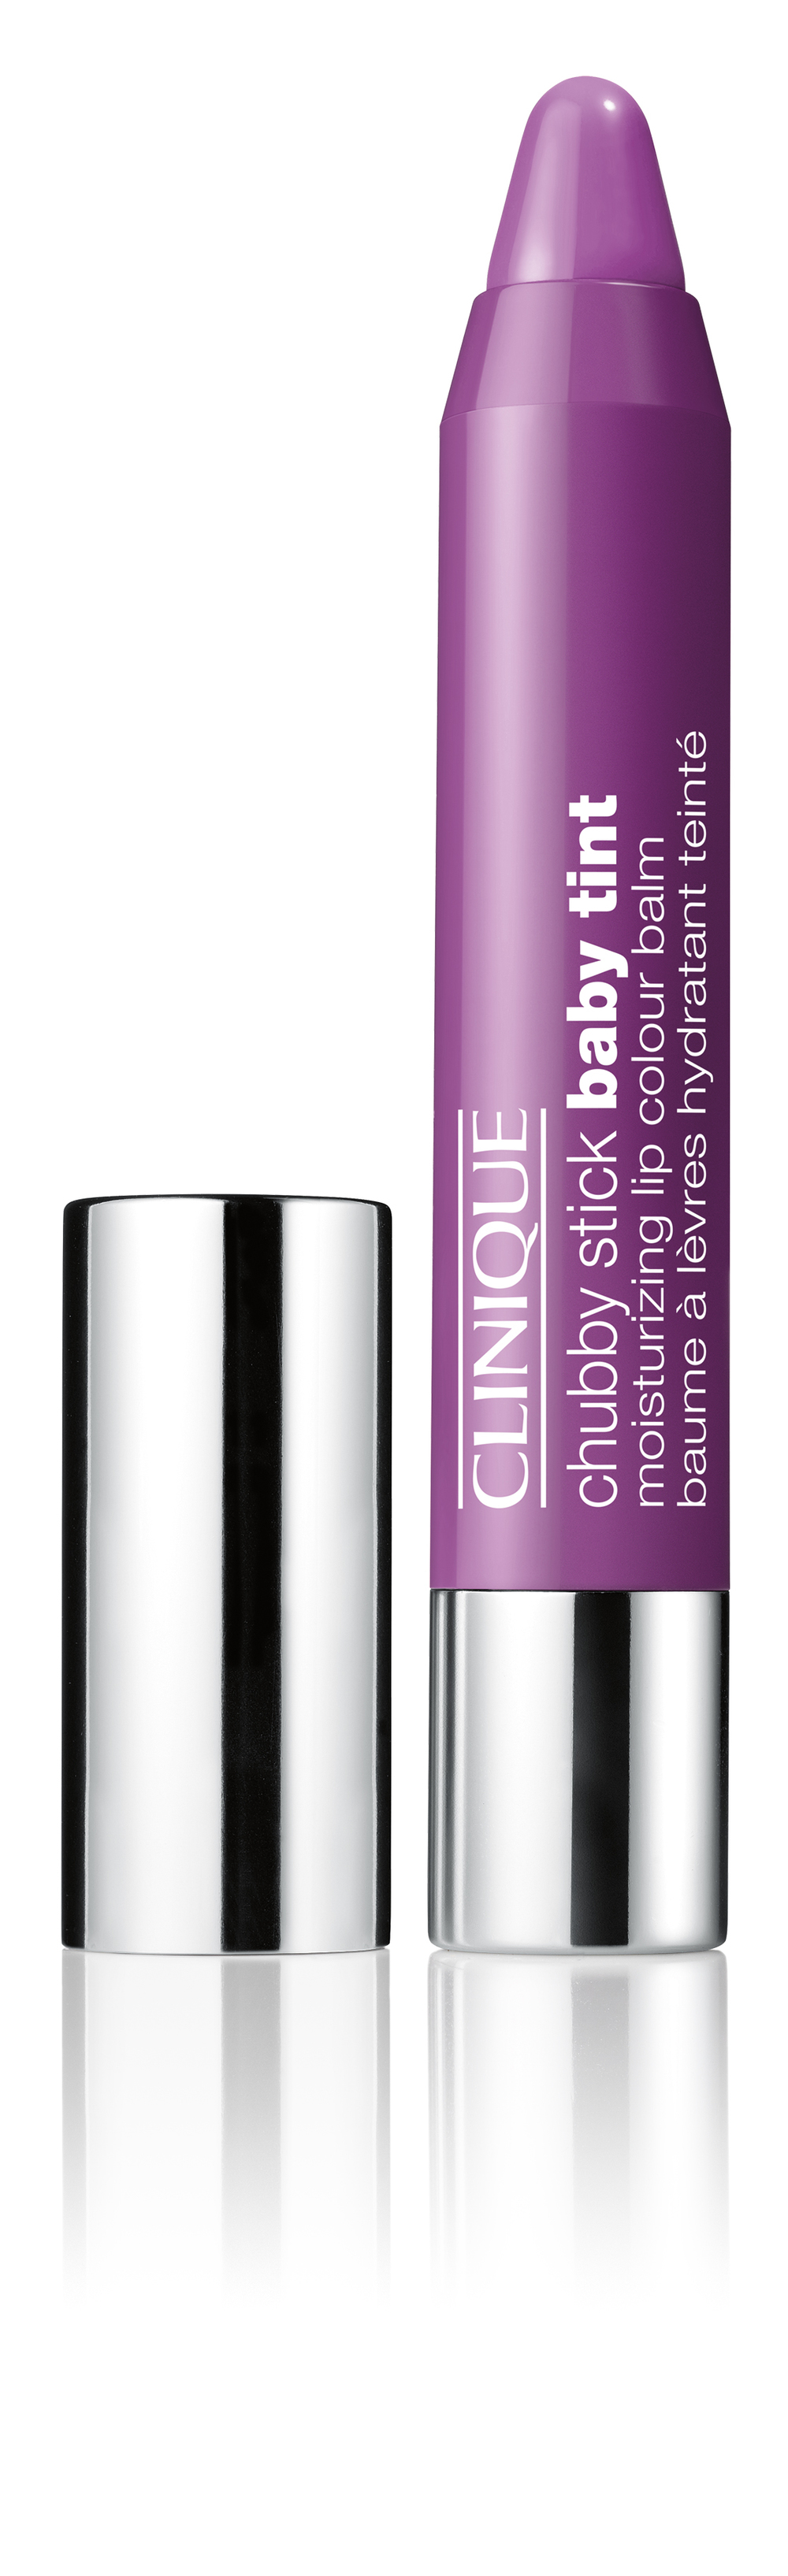 CLINIQUE Chubby Stick Baby Tint Moisturizing Lip Colour Balm FLOWERING FREESIA INTL ICON.jpg